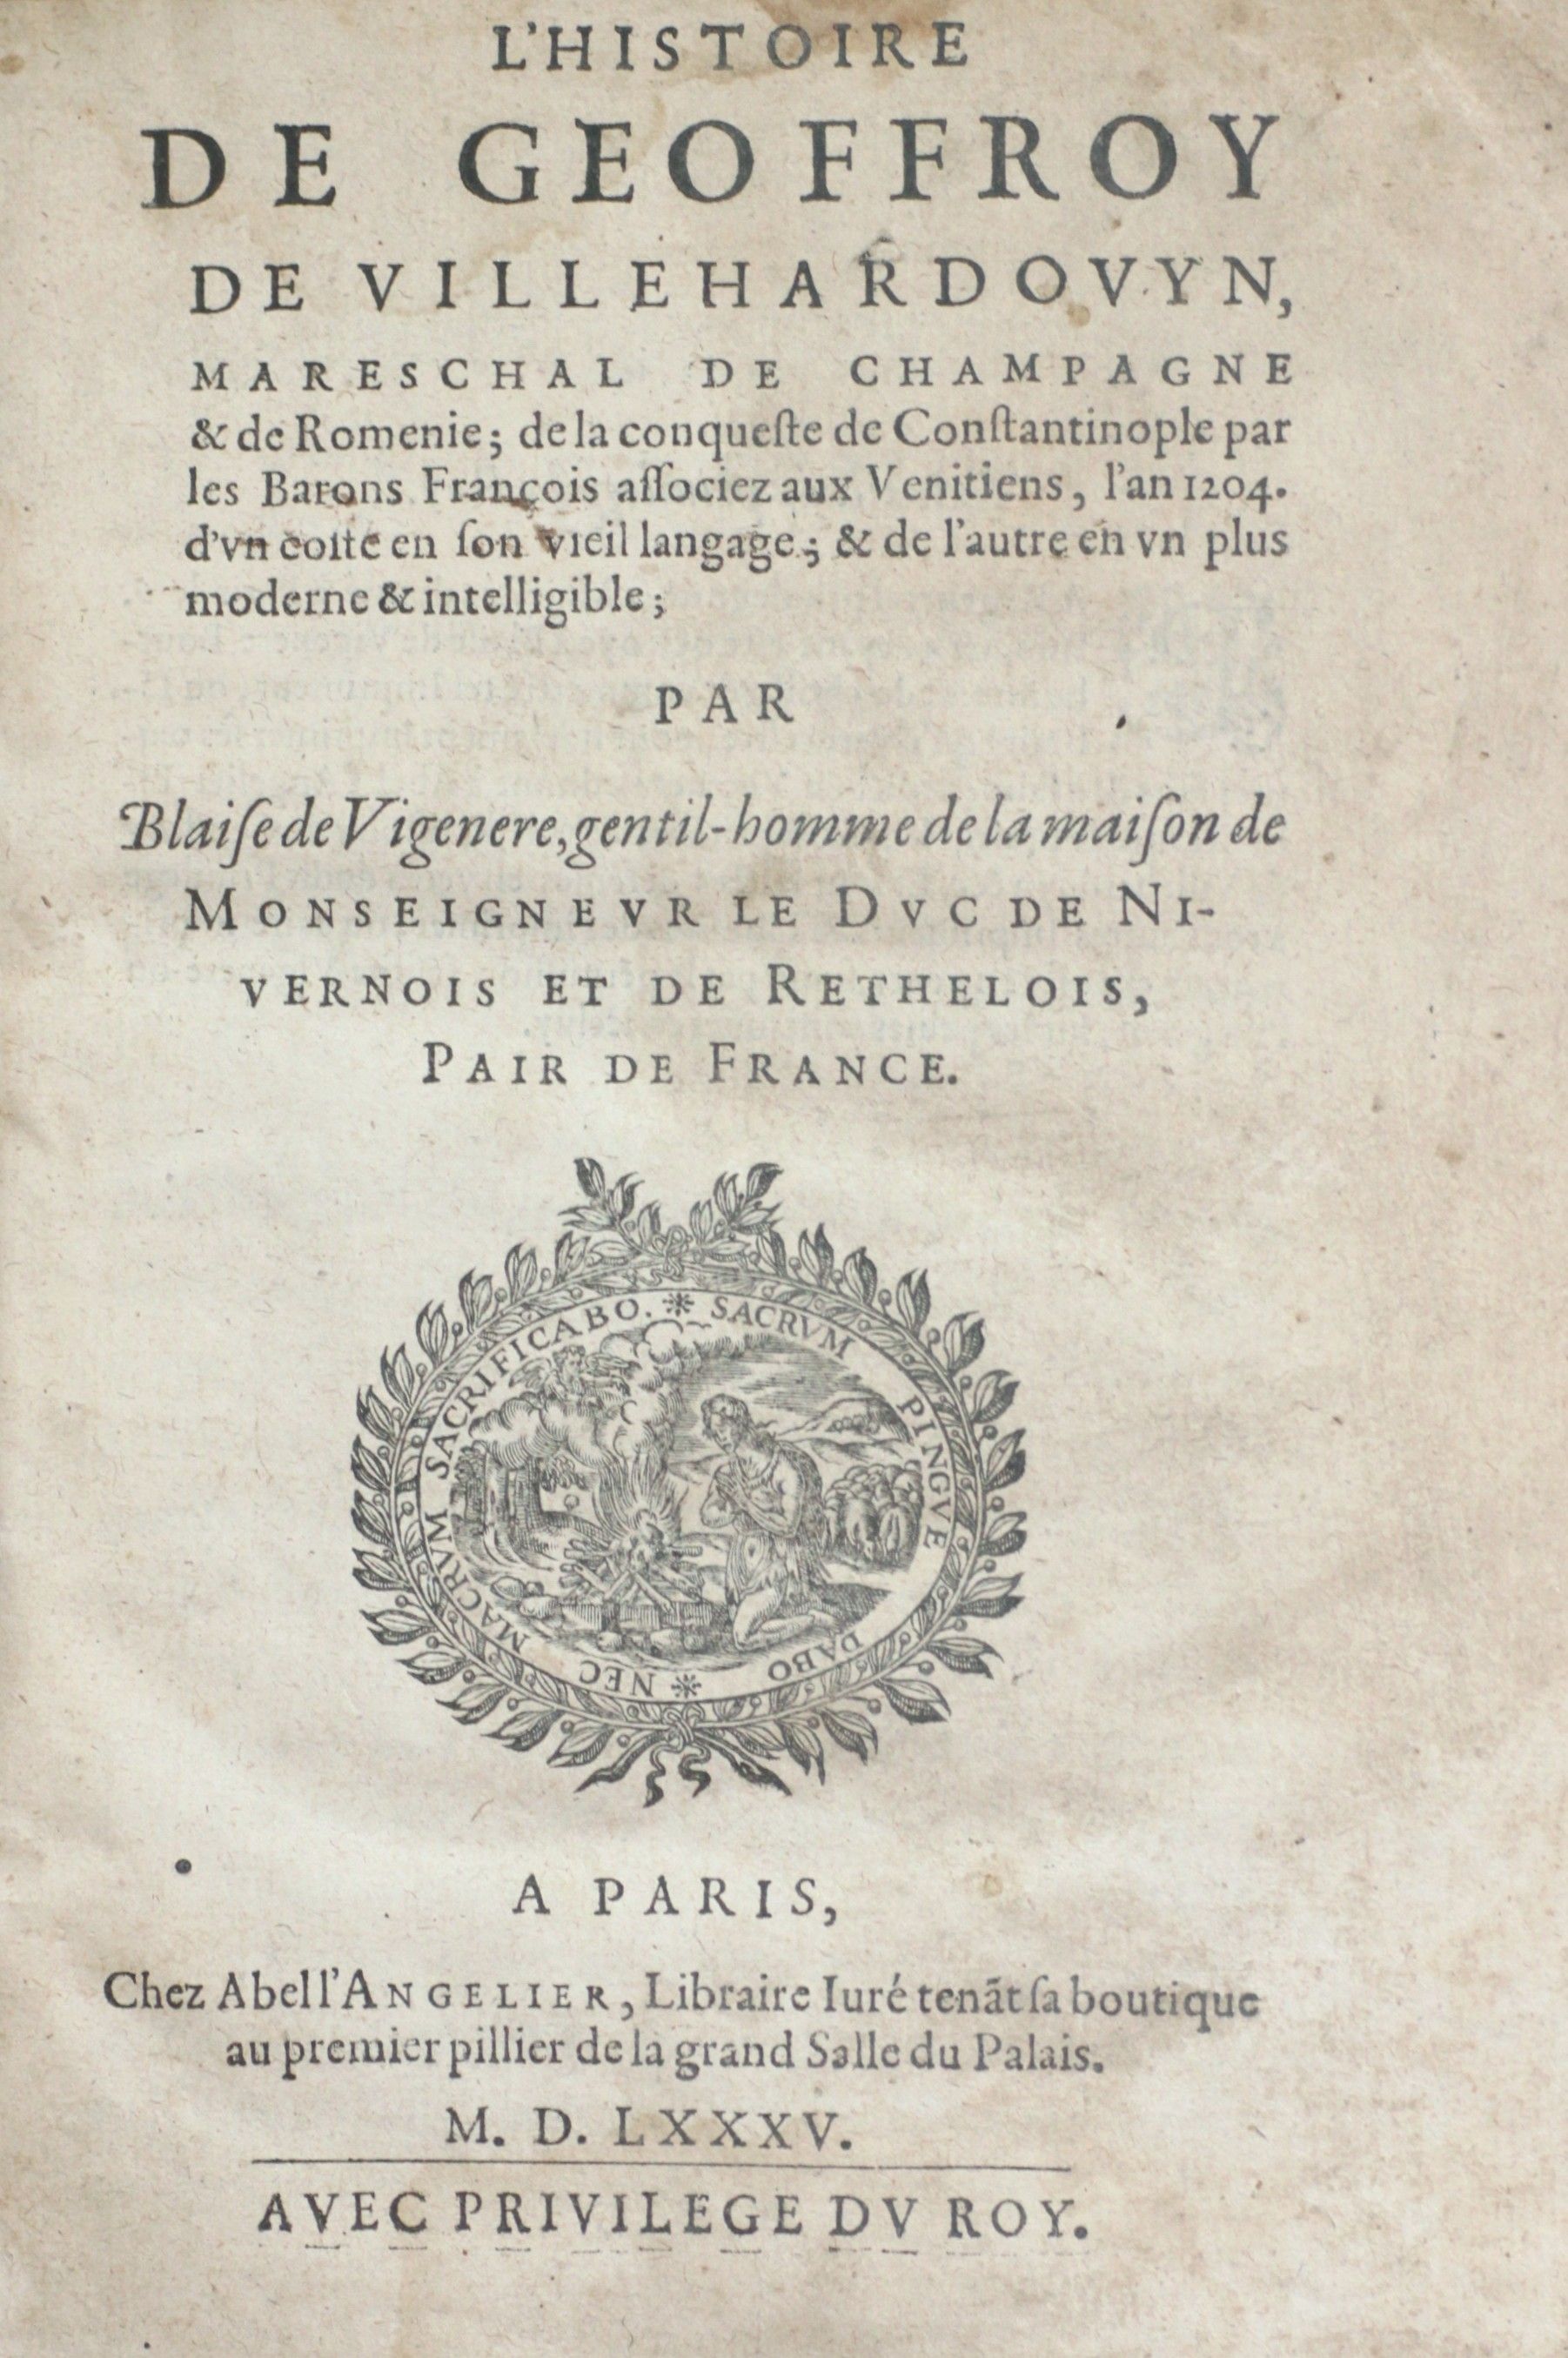 1585 edition with original text and translation in 16th-century French